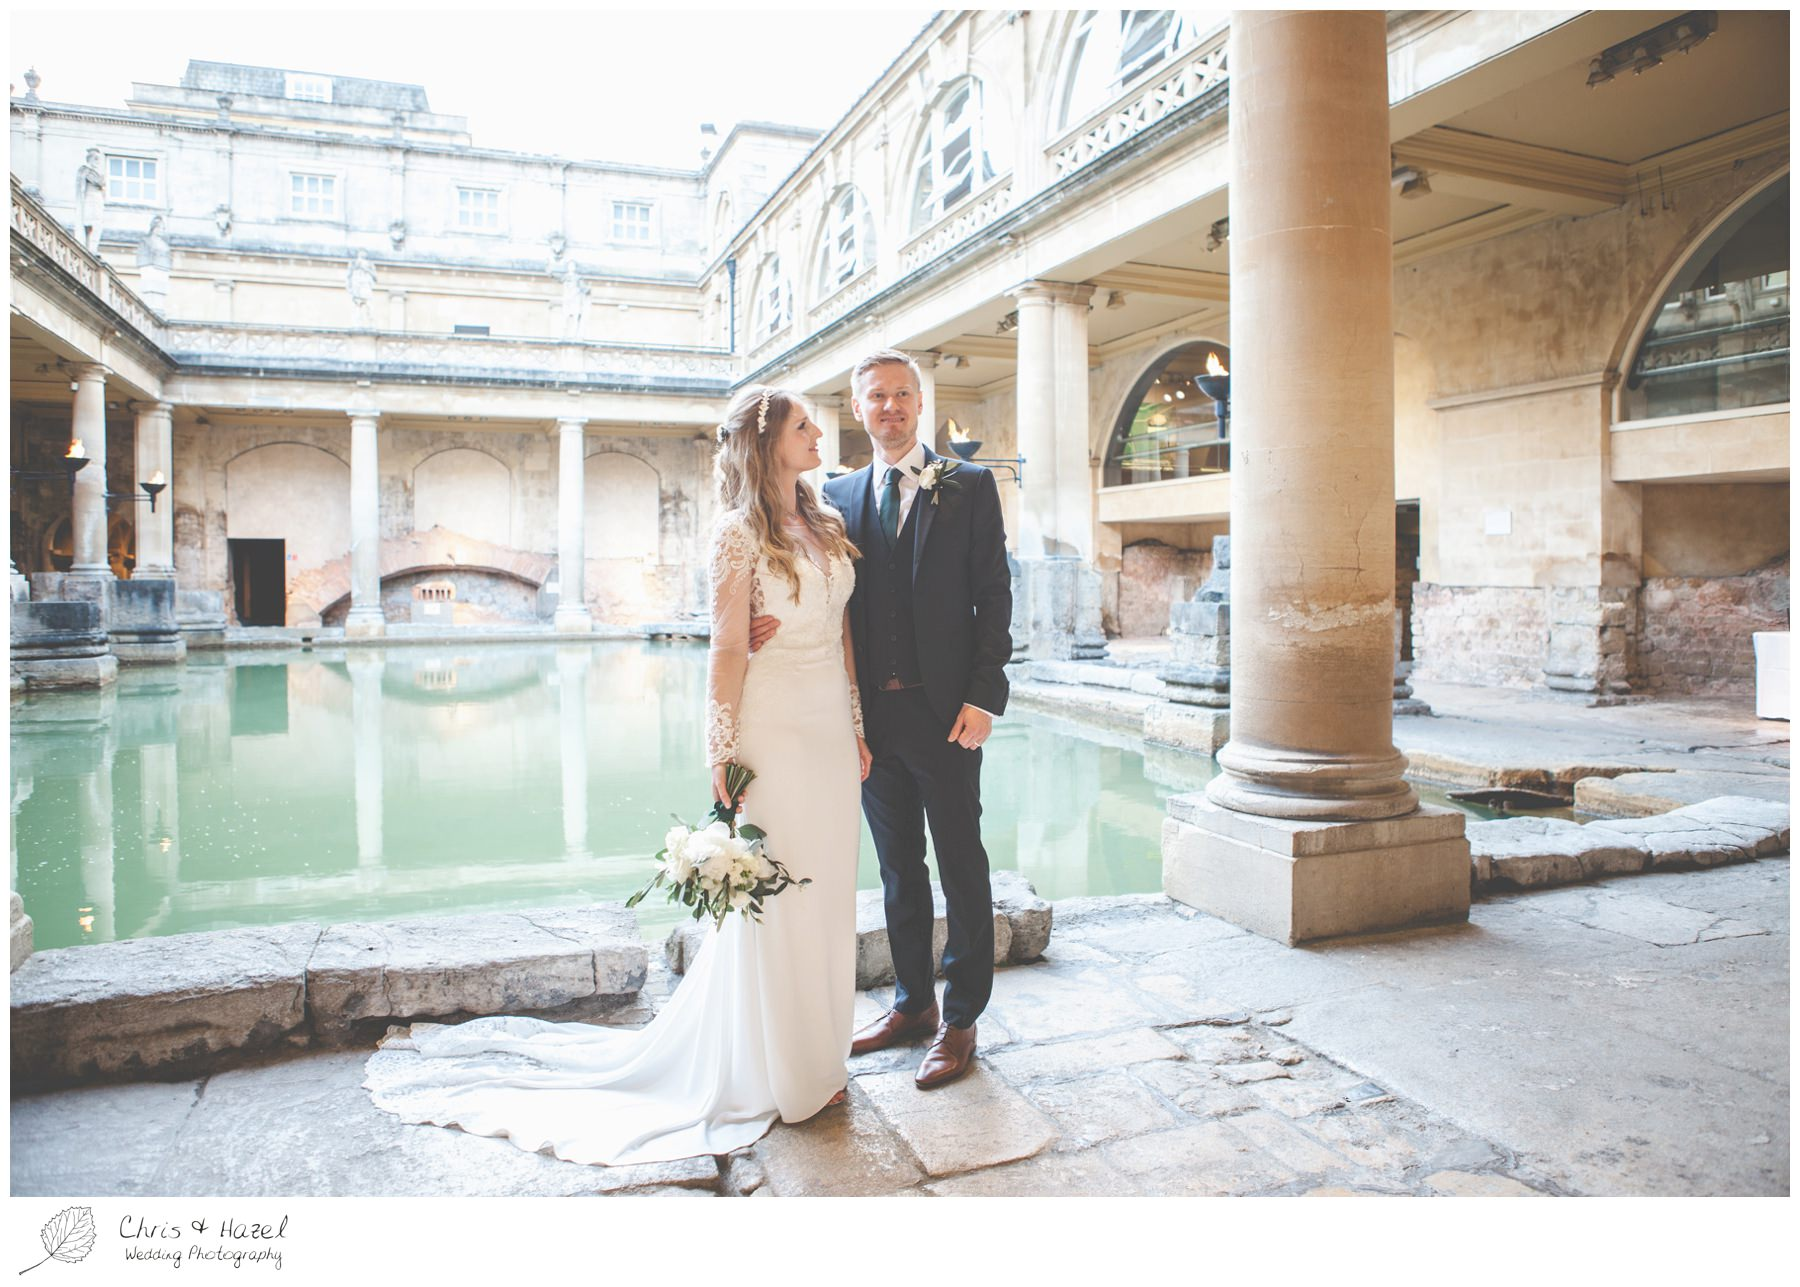 Bride and Groom portrait, bride and groom wedding photographs at Roman Baths Pump Rooms, The Roman Baths Wedding Photography, Roman Baths Wedding Photographer, Wedding in Bath, Bath Wedding Day, documentary wedding photography, Chris and Hazel Wedding Photography Bath, Andy Frost Sian Upson